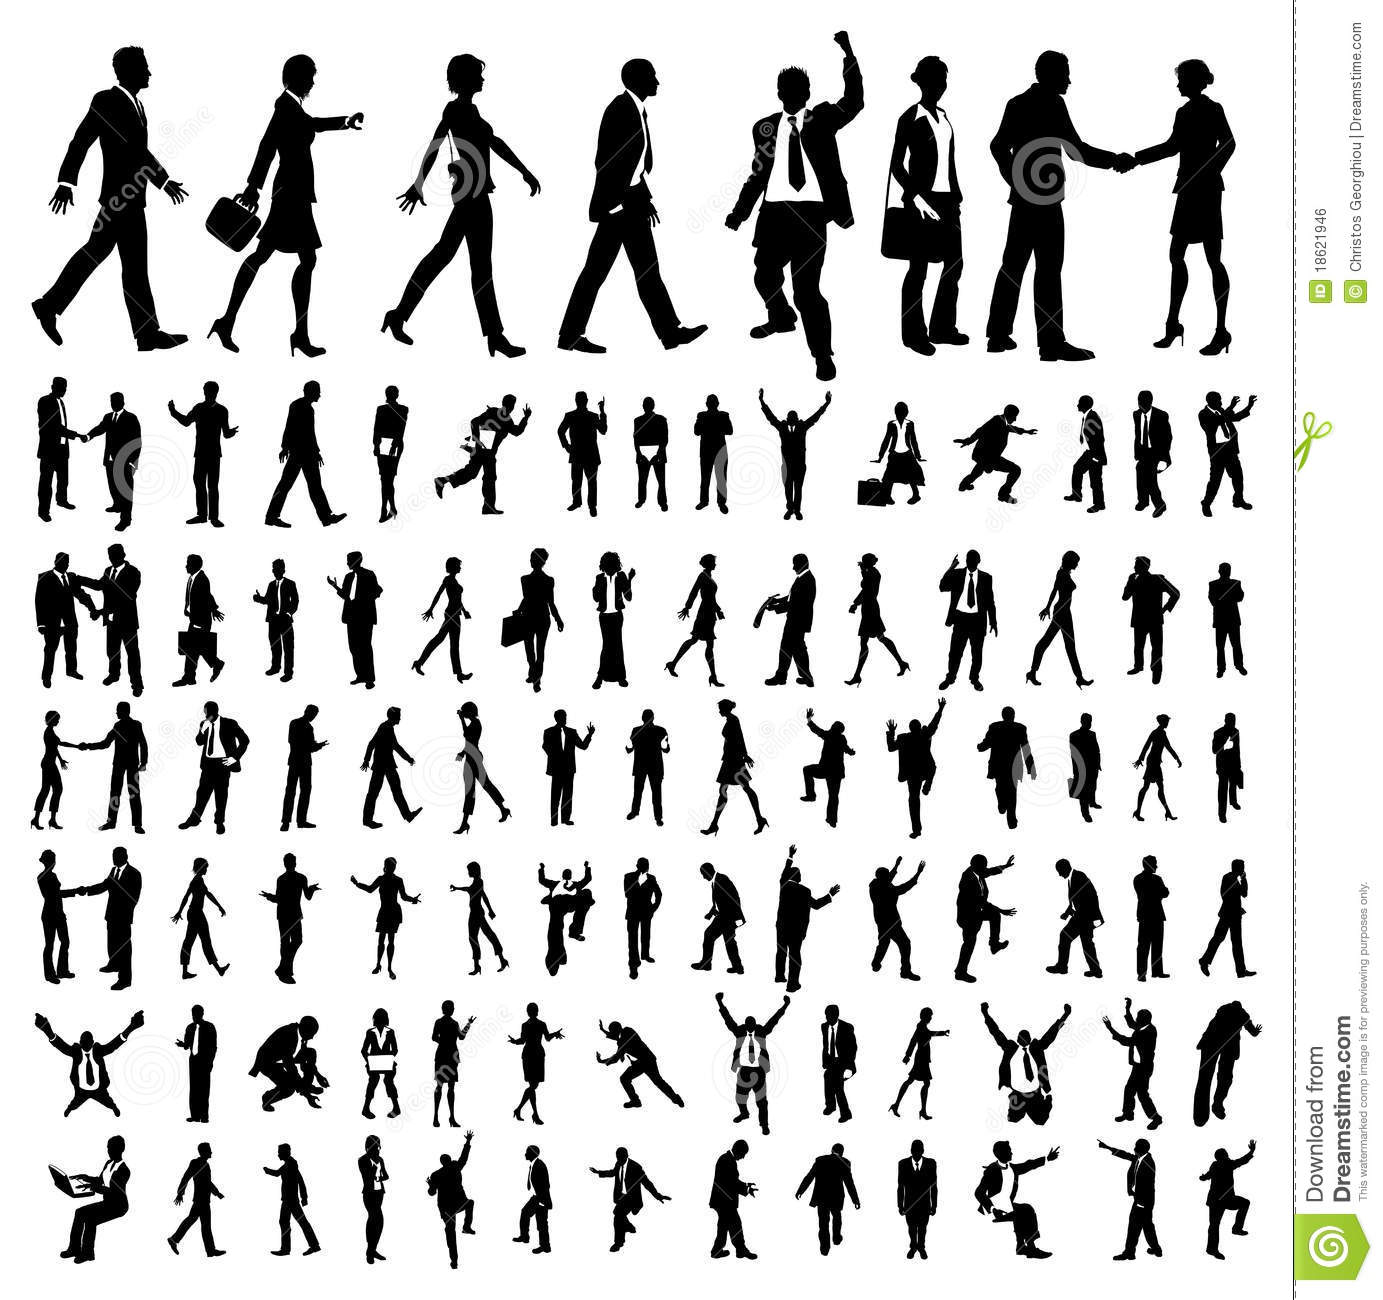 Many High Quality Business People Silhouettes Royalty Free